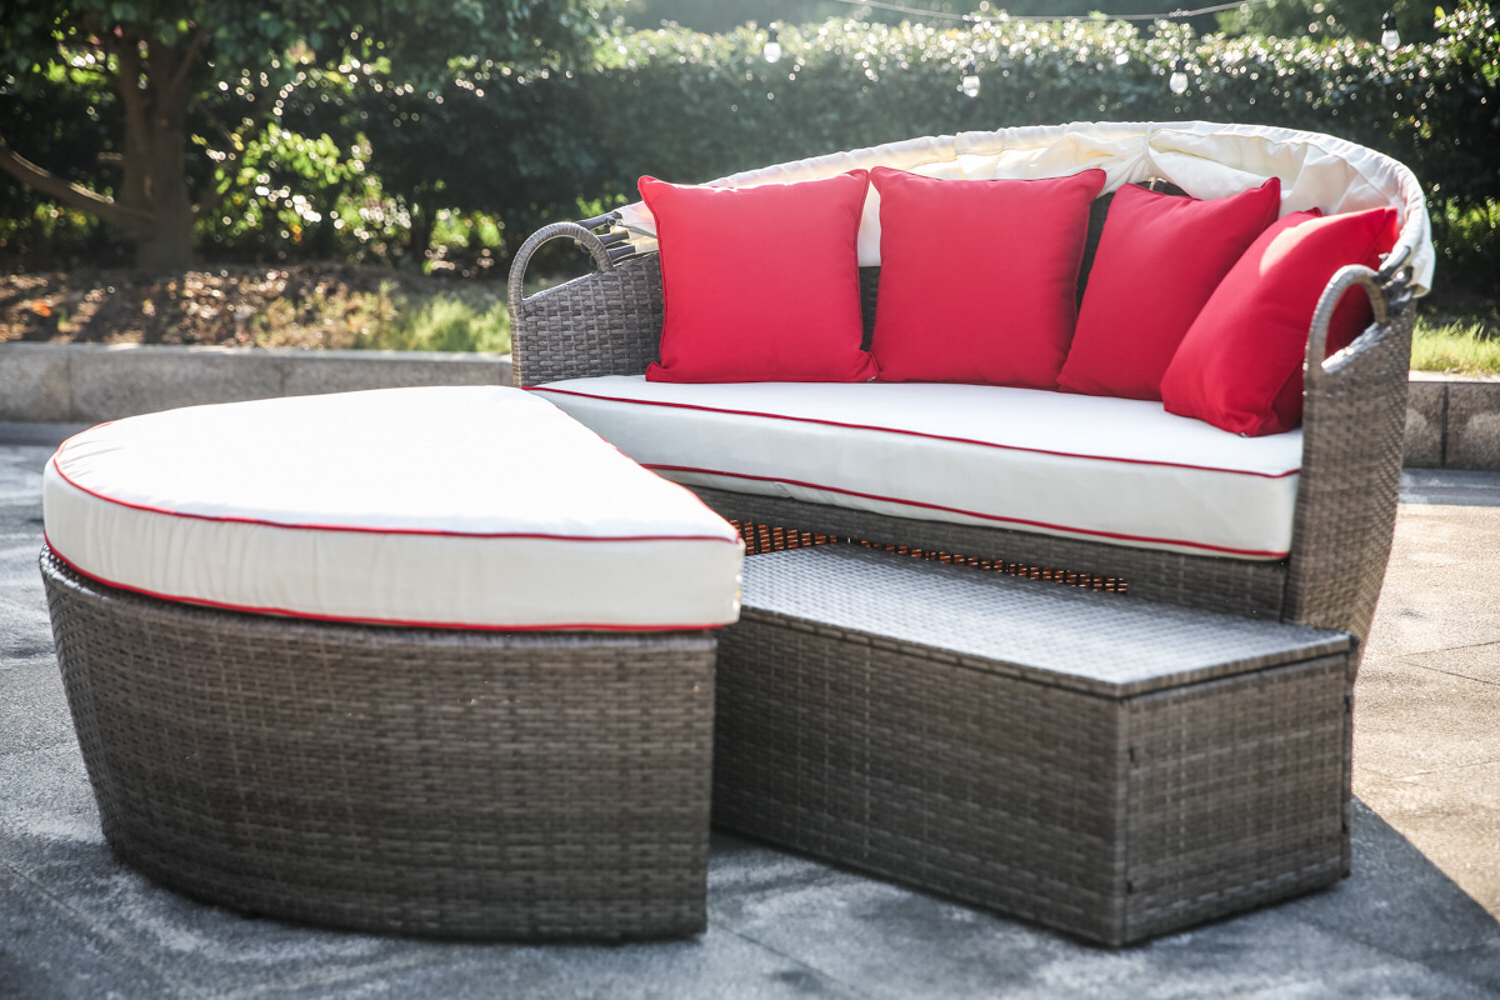 Well Known Purington Circular Patio Sectionals With Cushions Intended For Fansler Patio Daybed With Cushions (View 13 of 20)